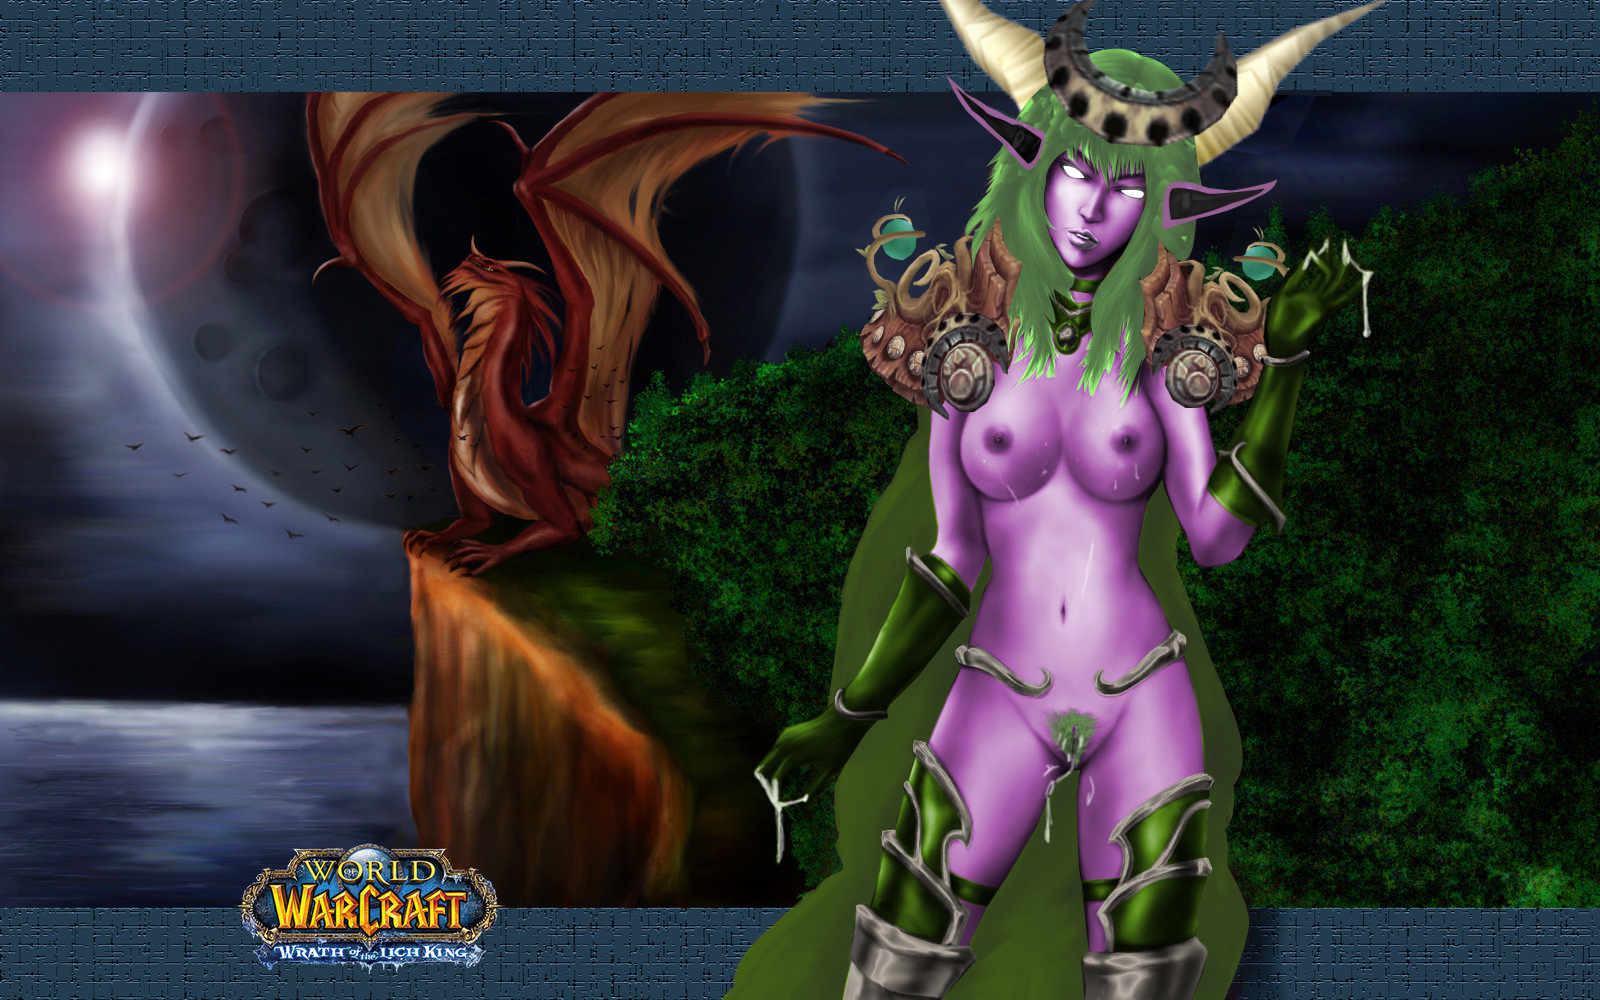 World of warcraft hd porn pics naked pic